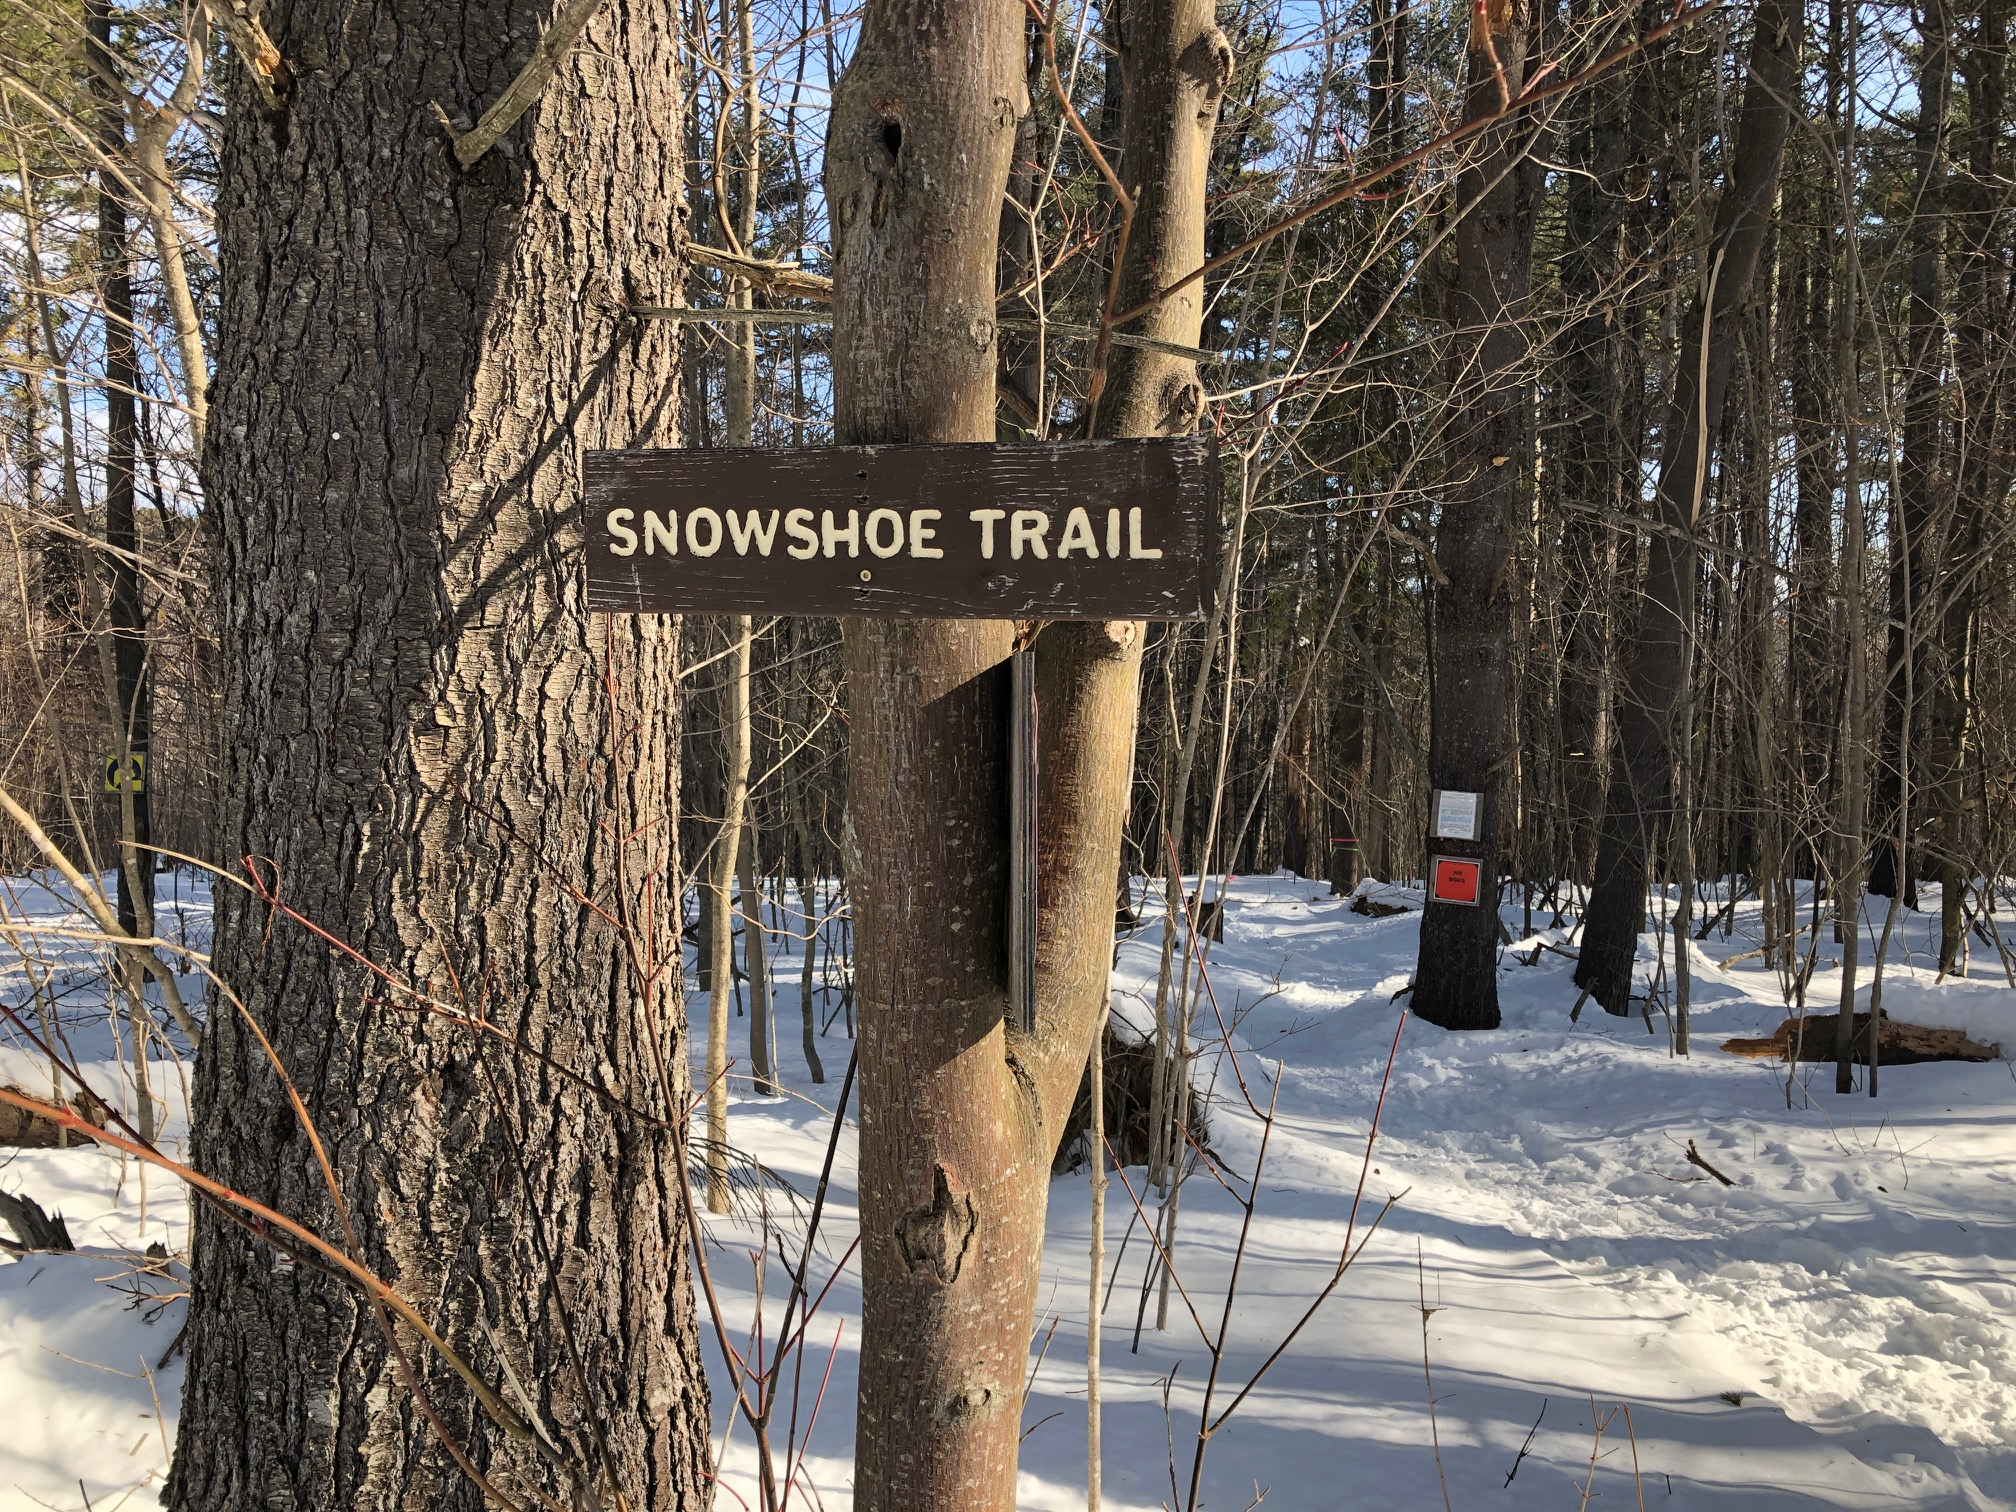 I can't say enough nice things about the snowshoe trail network at Mt. Blue State Park.